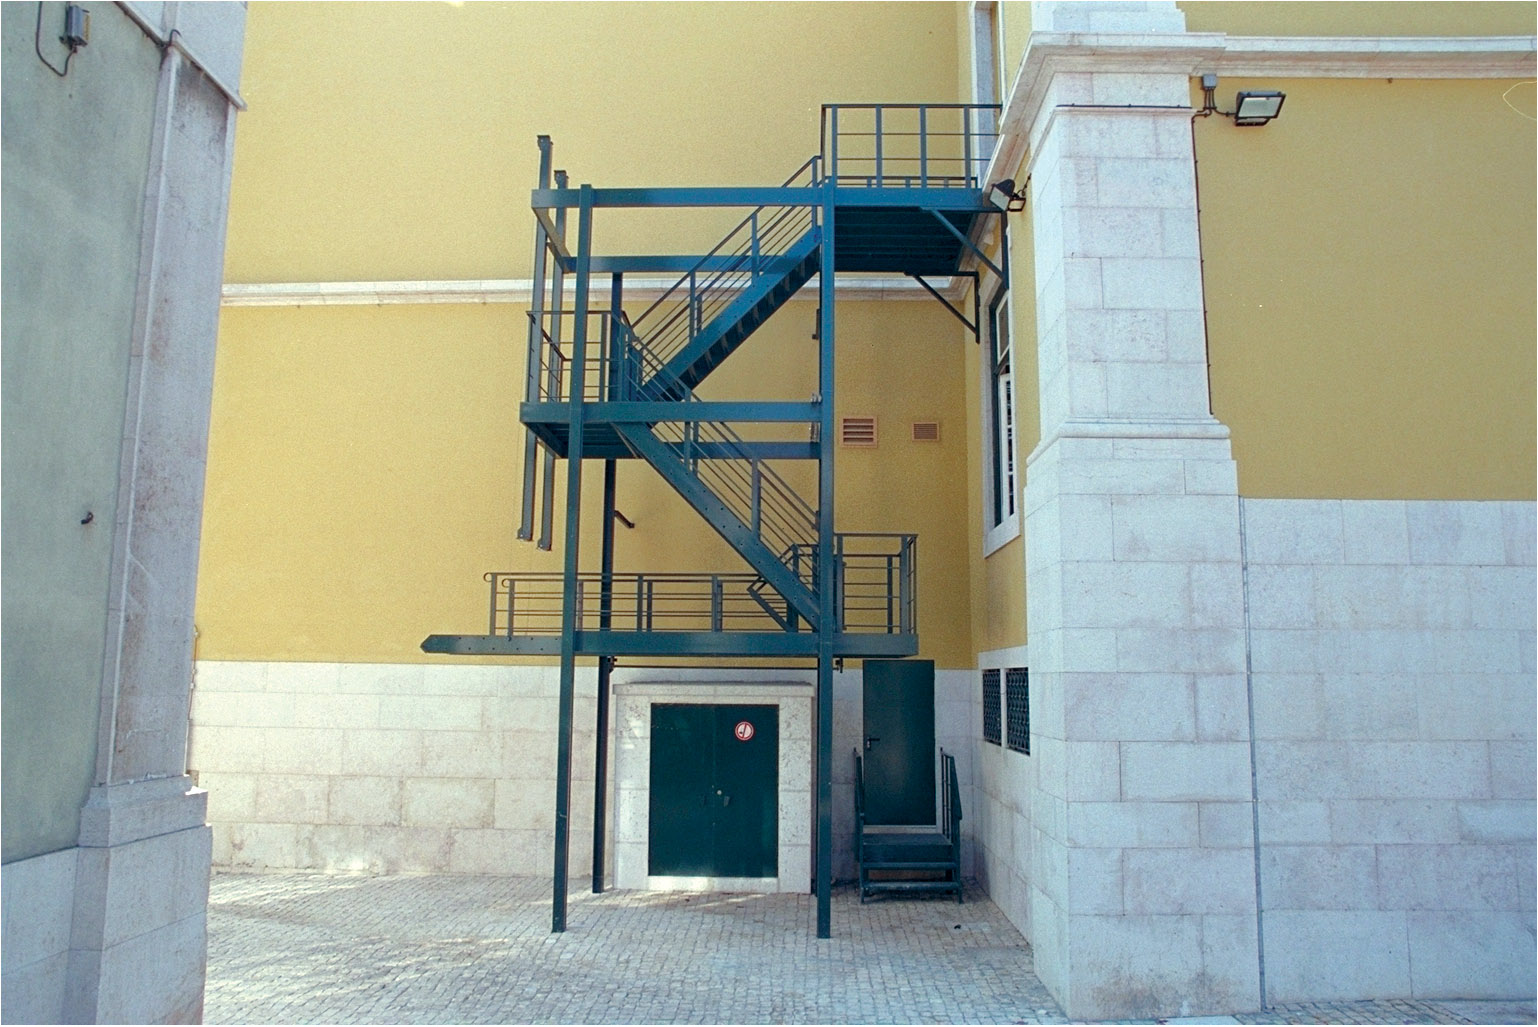 Counterbalanced stairs with cable and pulley